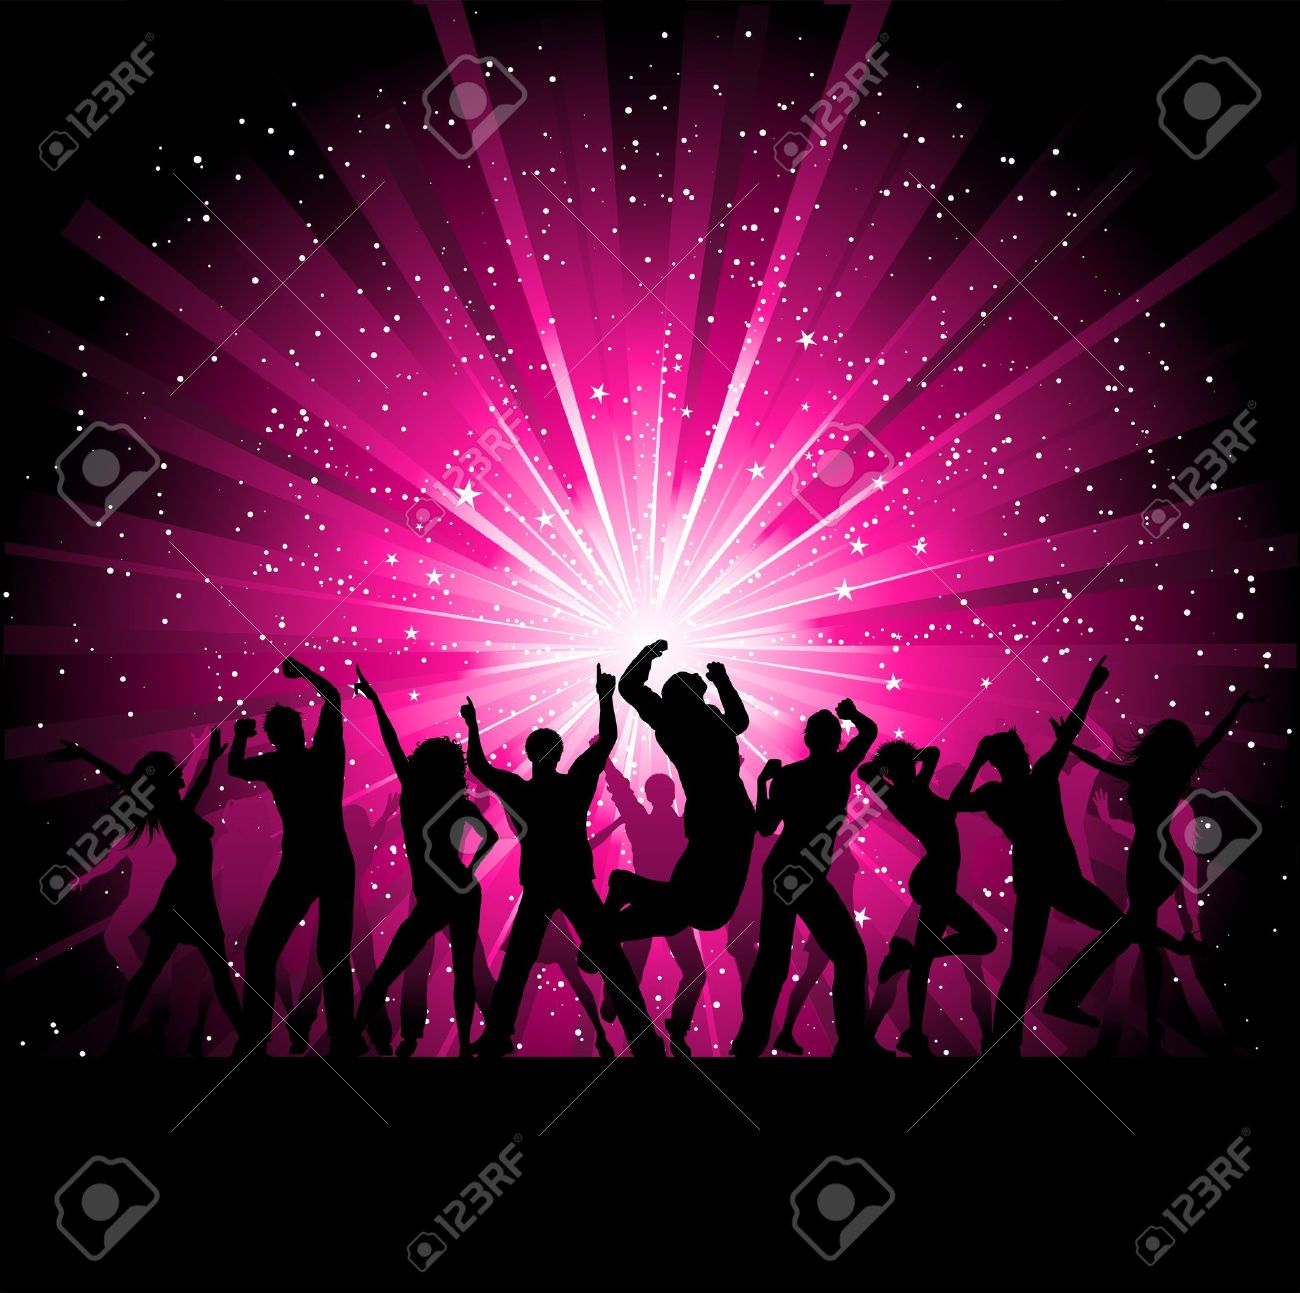 Silhoeuttes of people dancing on a starburst background Stock Photo - 7933836